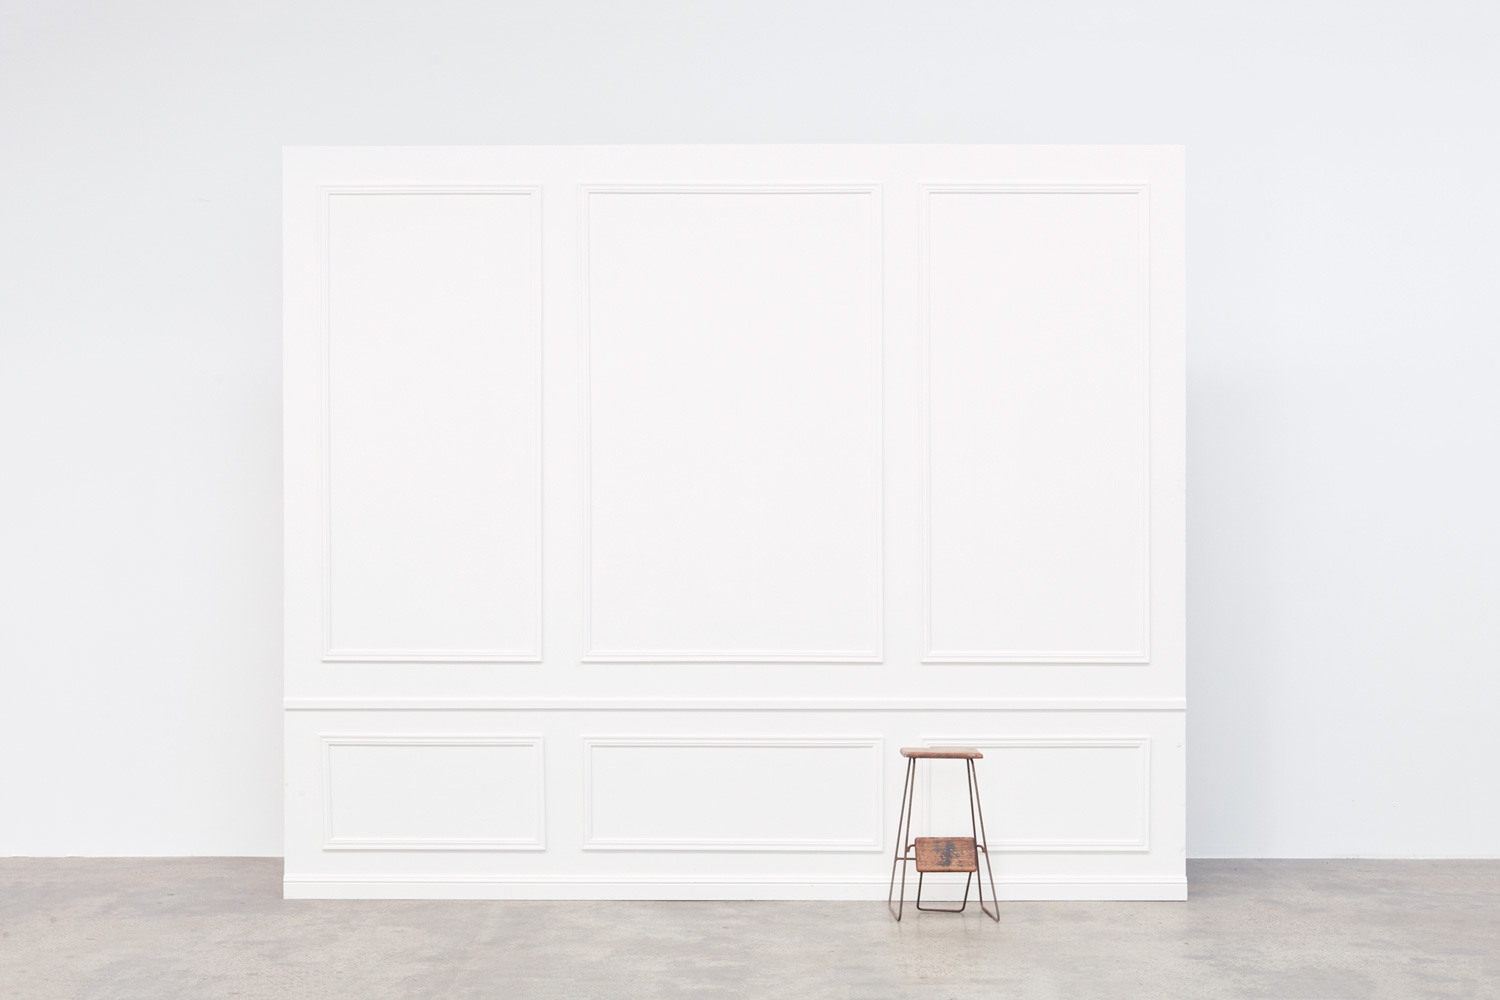 12 X 10 NON-CANVAS ARCHITRAVE